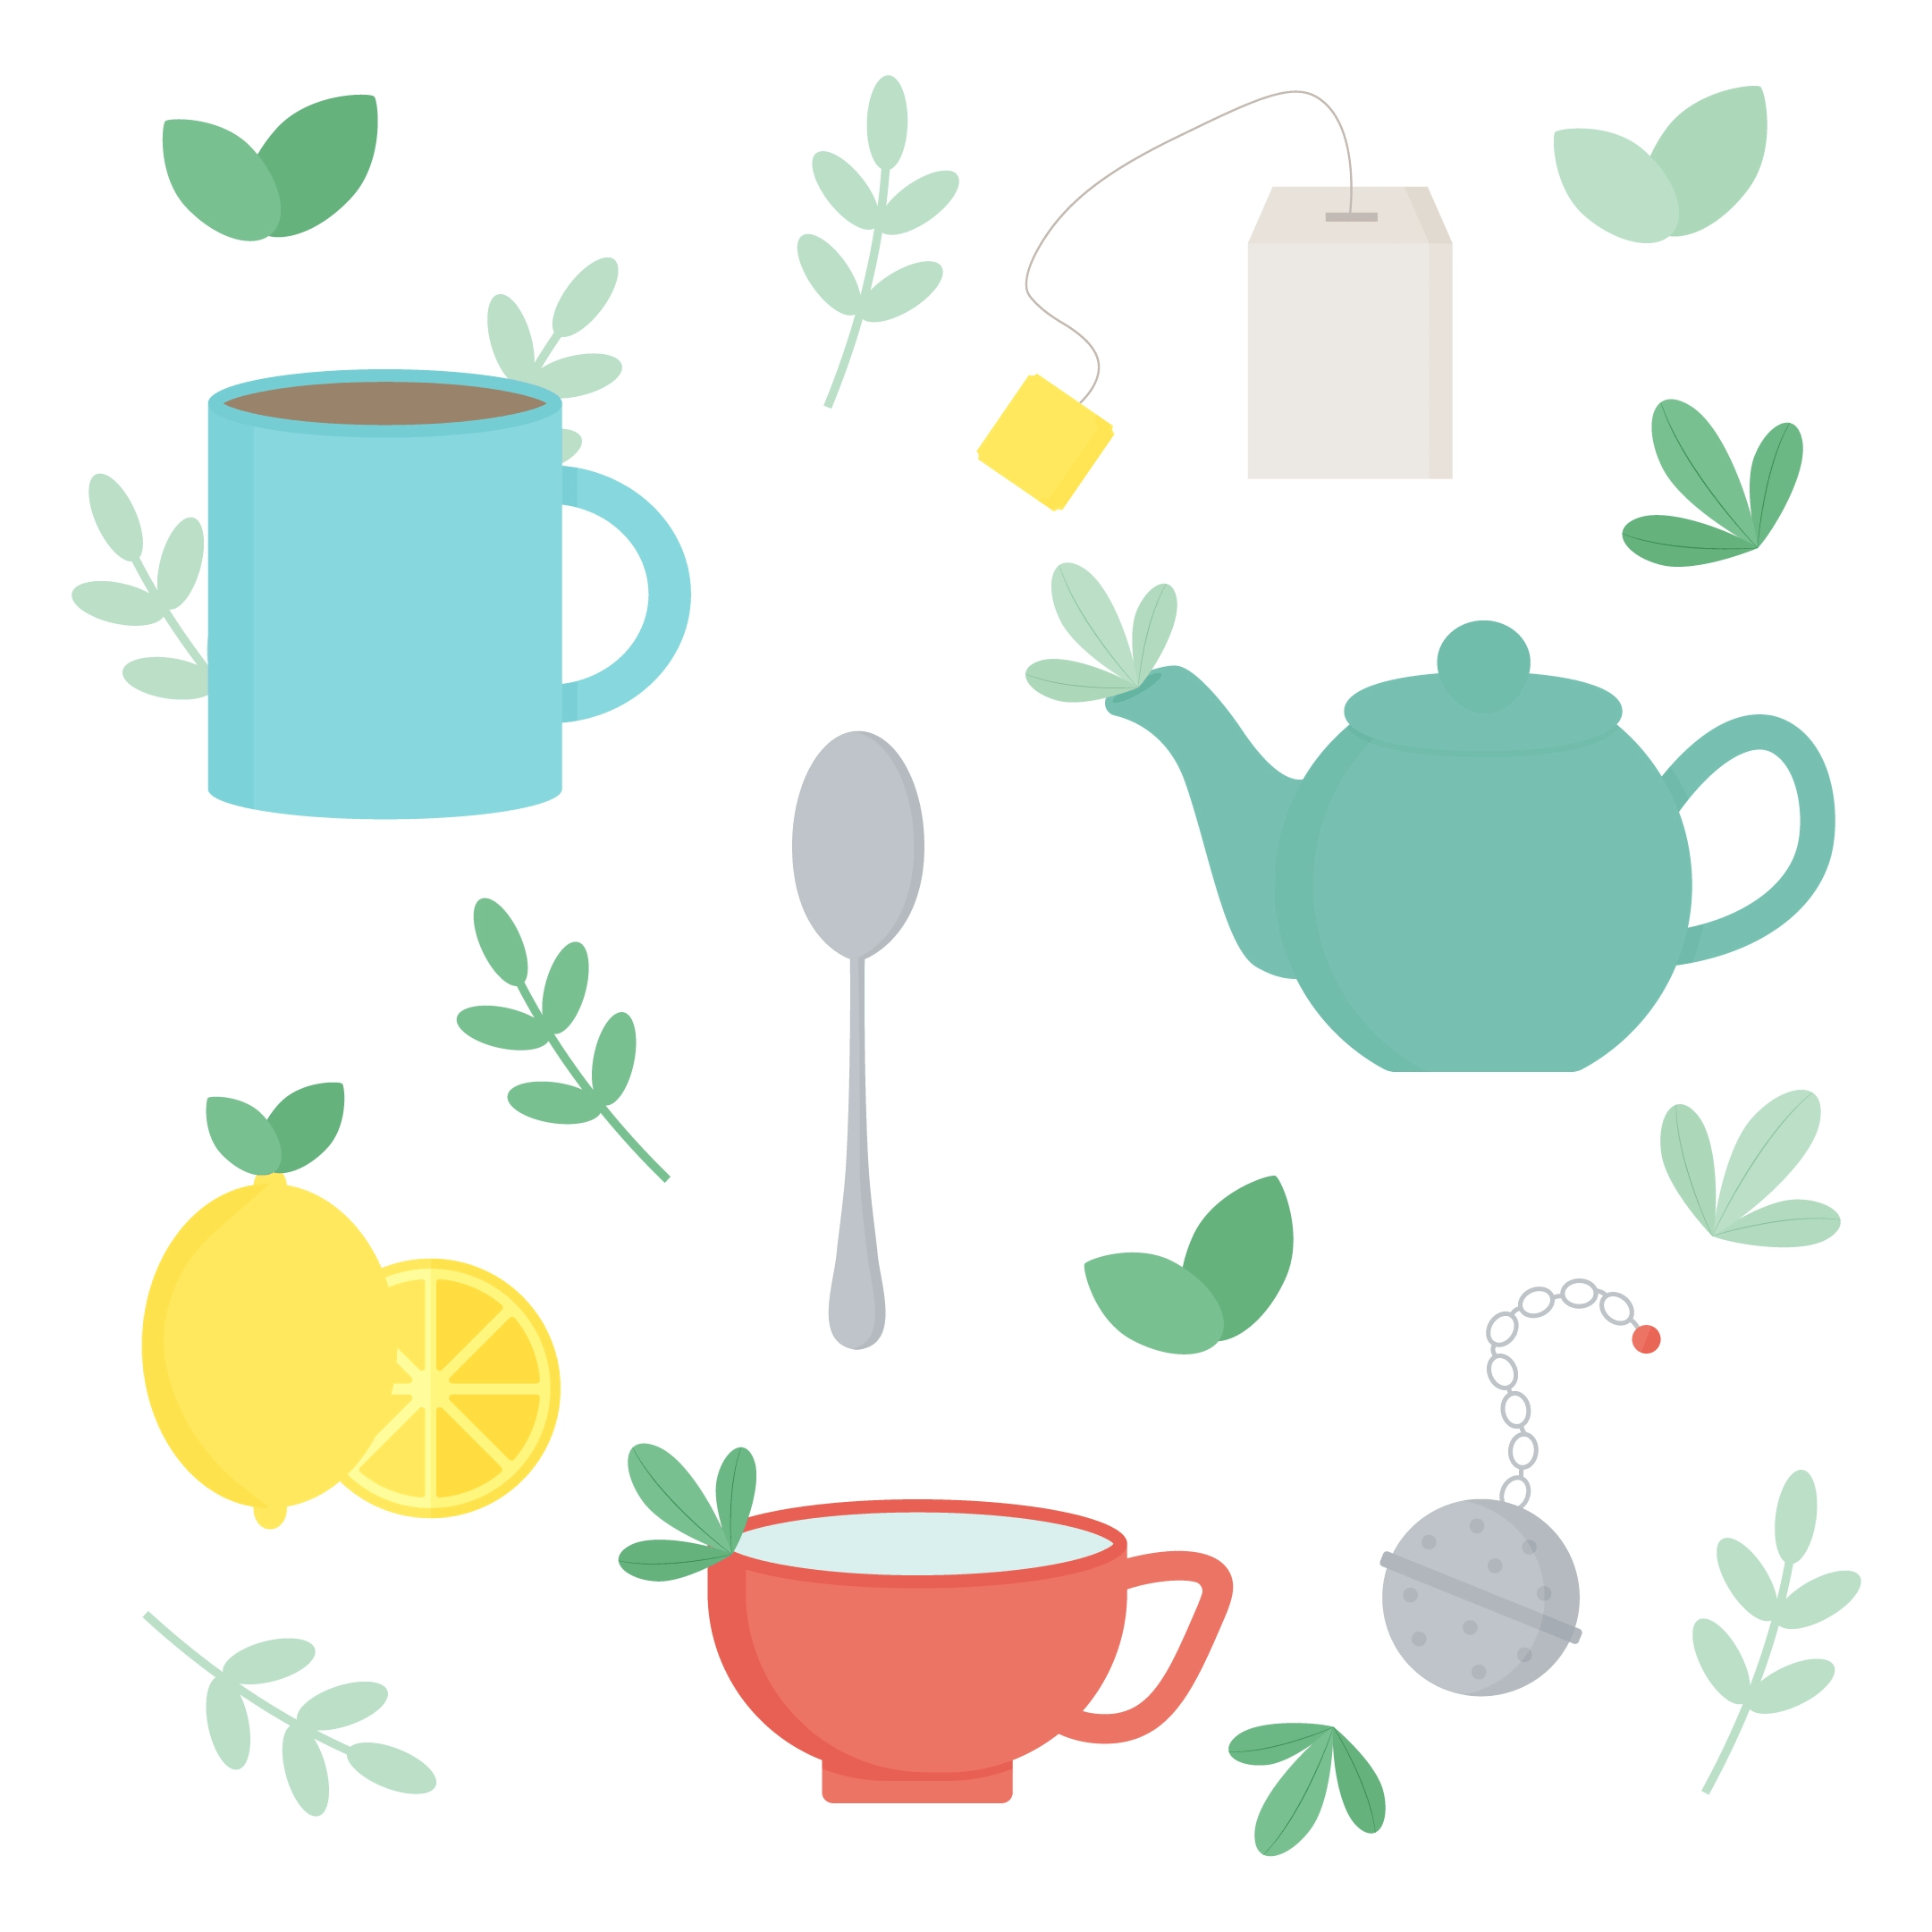 Vector illustration of a tea making set, including supplies: mug, lemons, spoon, teacup, teabag, teapot, tea ball with loose tea leaves in flat design style